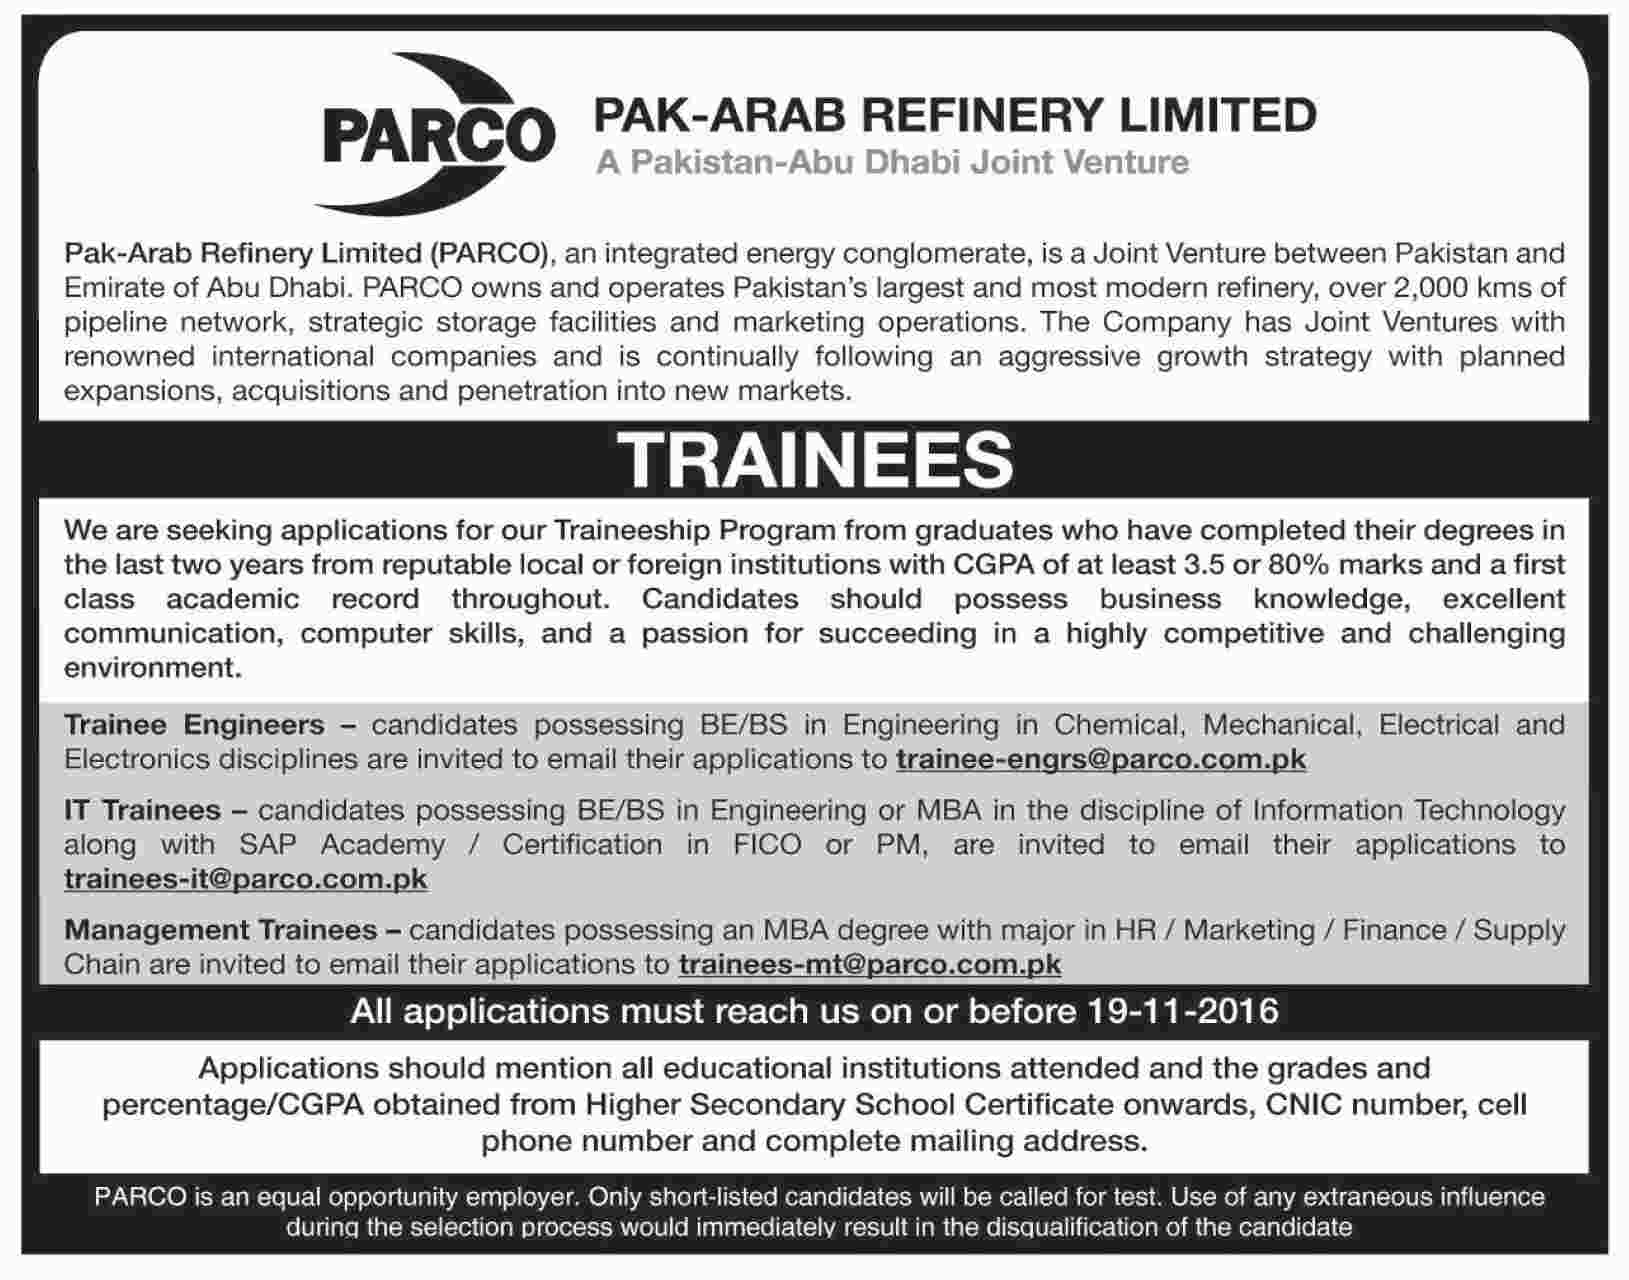 application for job apply sample in pakistan